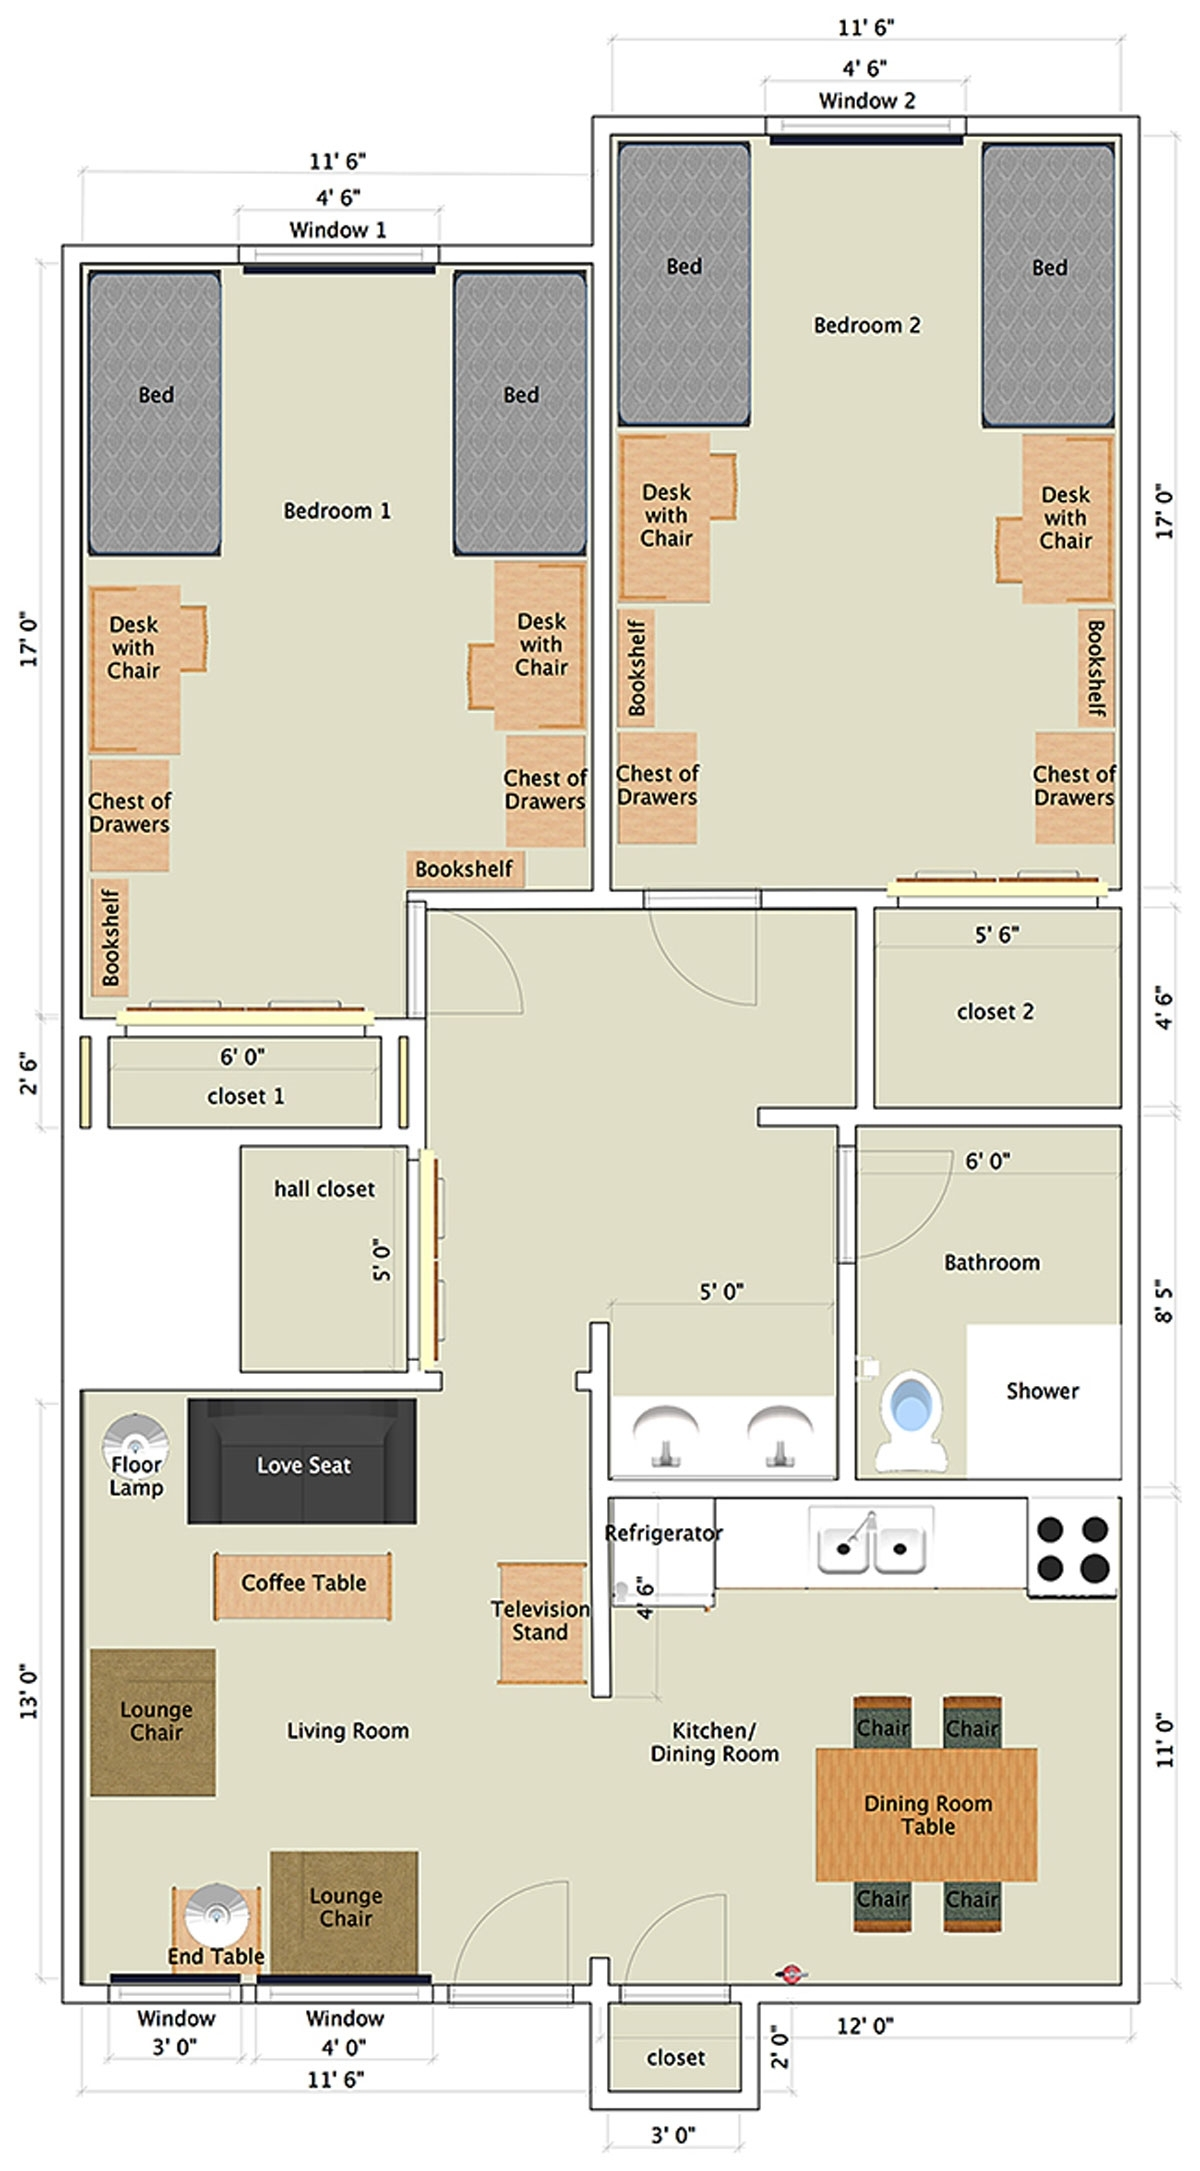 Nittany Apartments: 2-Bedroom Garden Apartment | Penn State with Garden Apartment Floor Plans